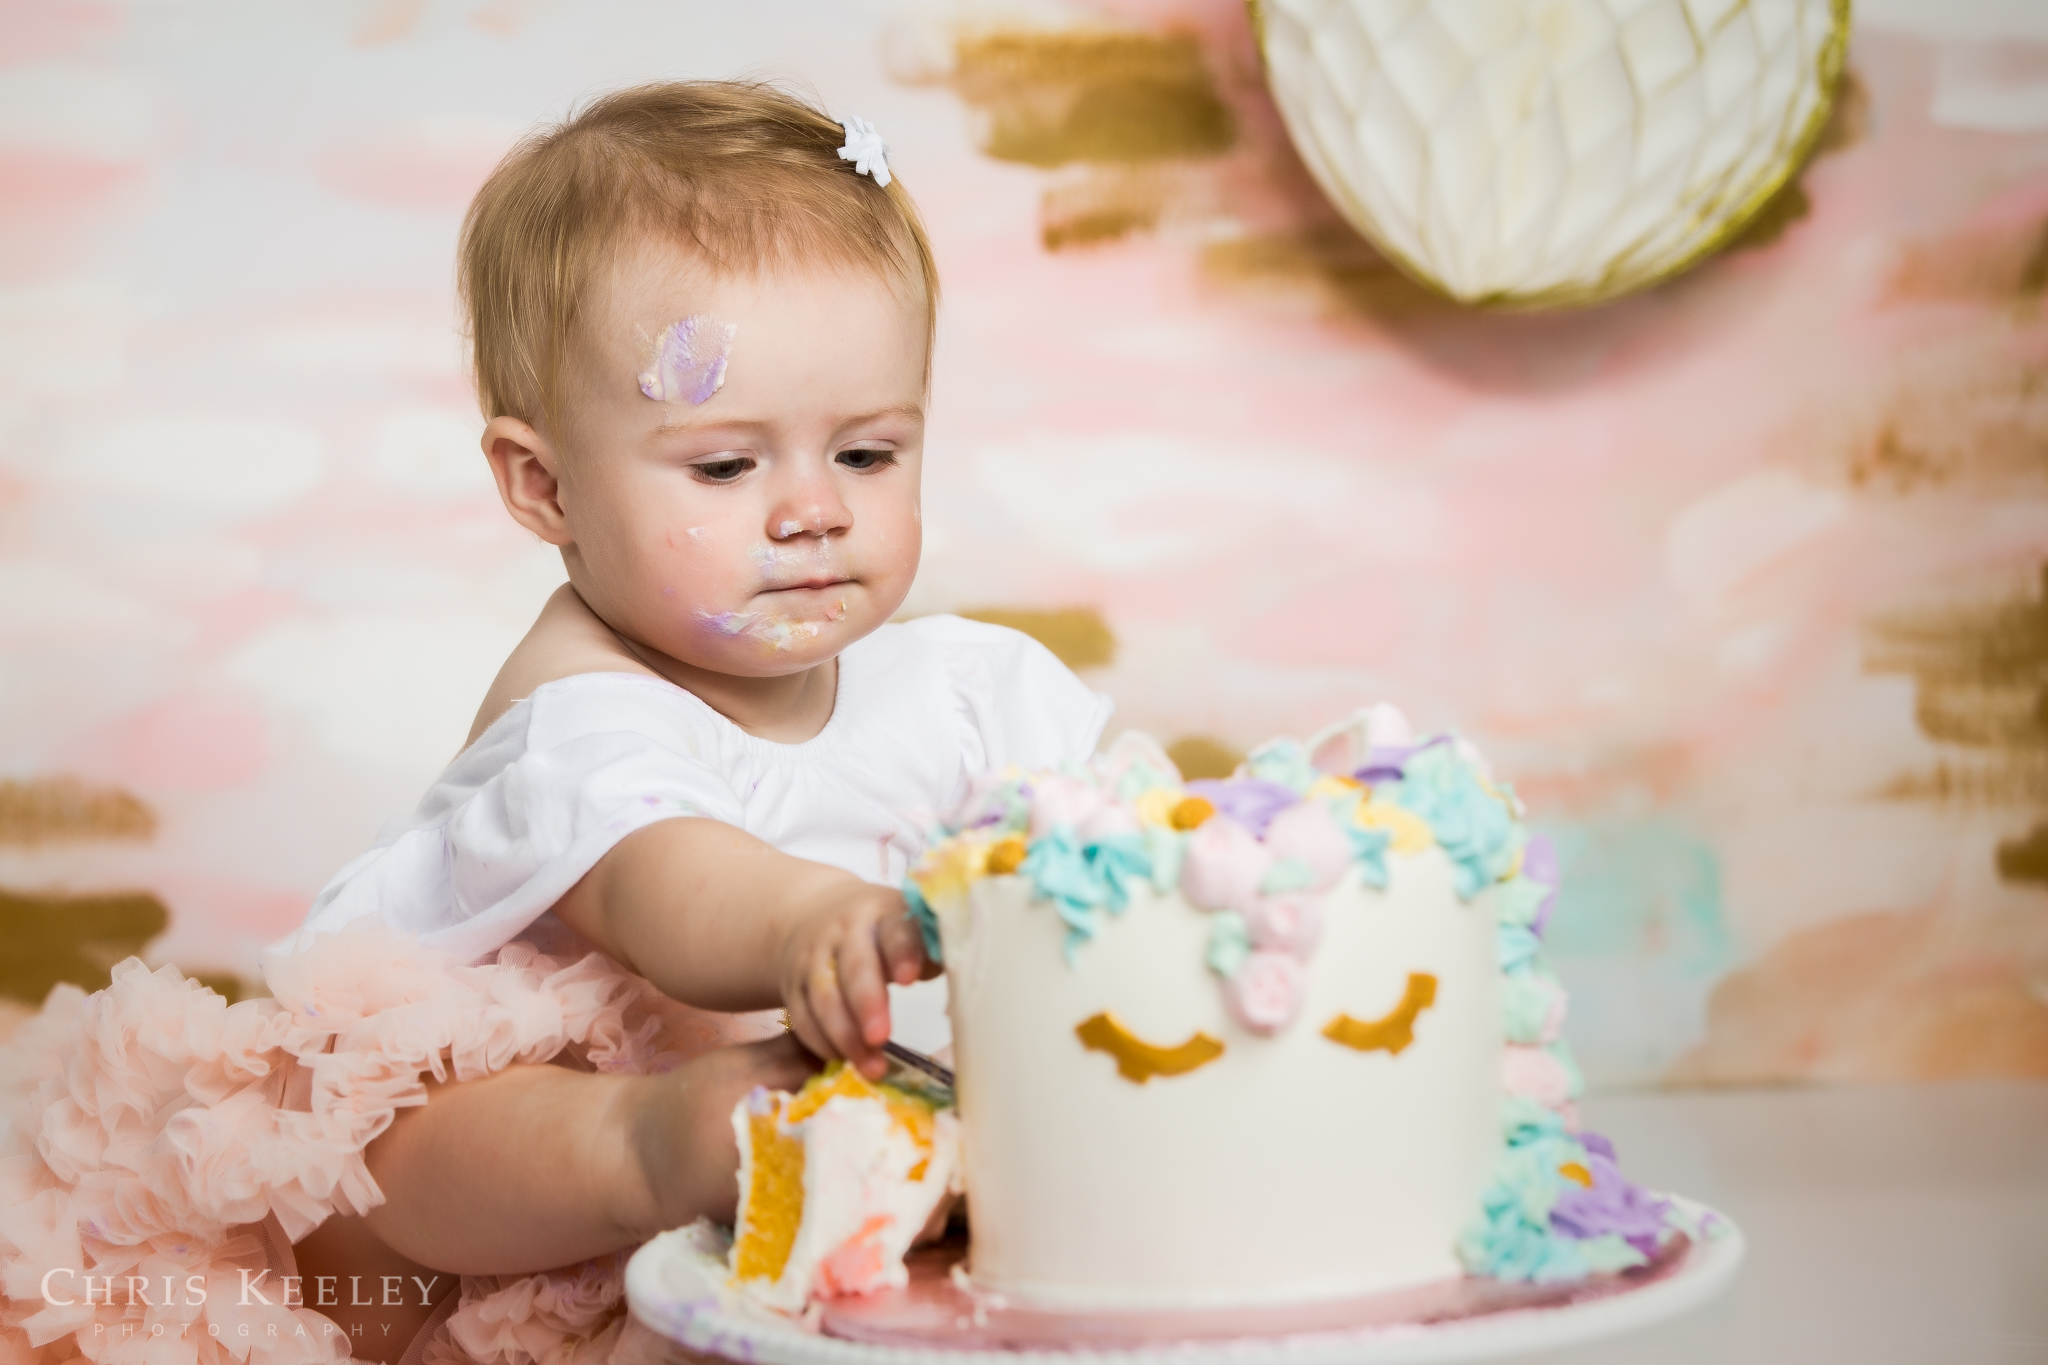 gwendolyn-one-year-cake-smash-dover-new-hampshire-photographer-13.jpg